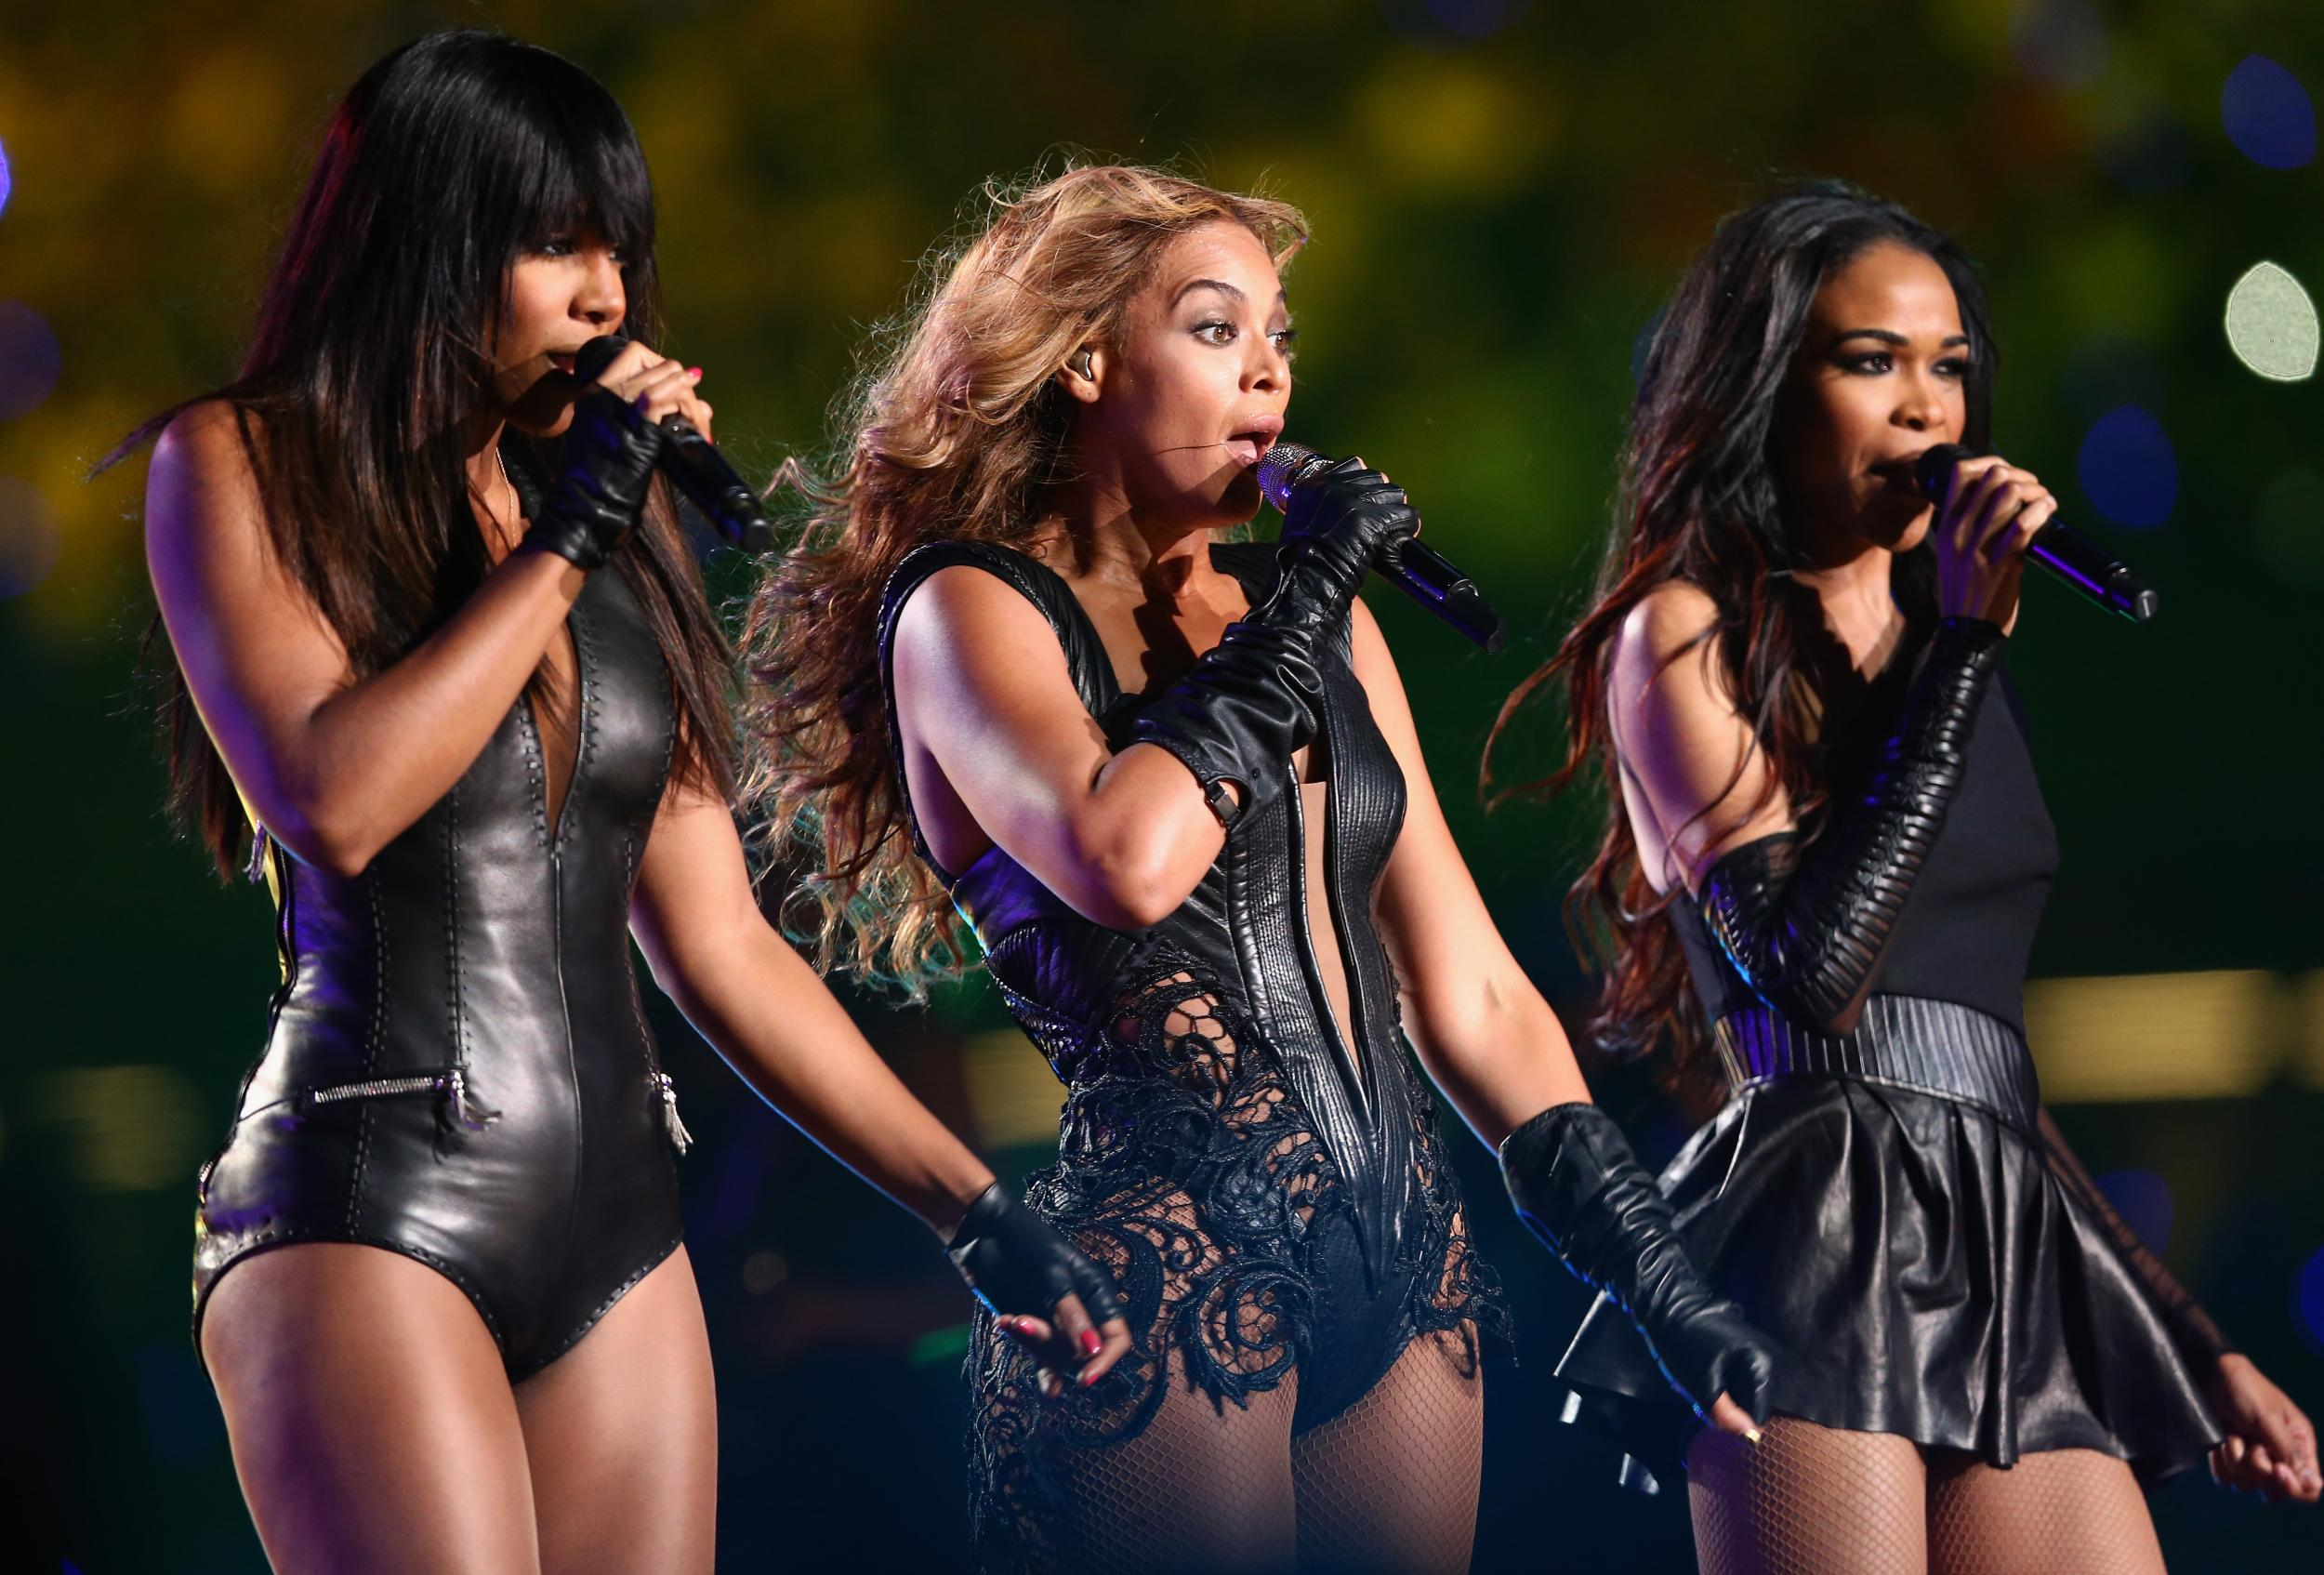 Destiny's Child reunion: Kelly Rowland addresses rumours, says she likes to give fans 'suprises'